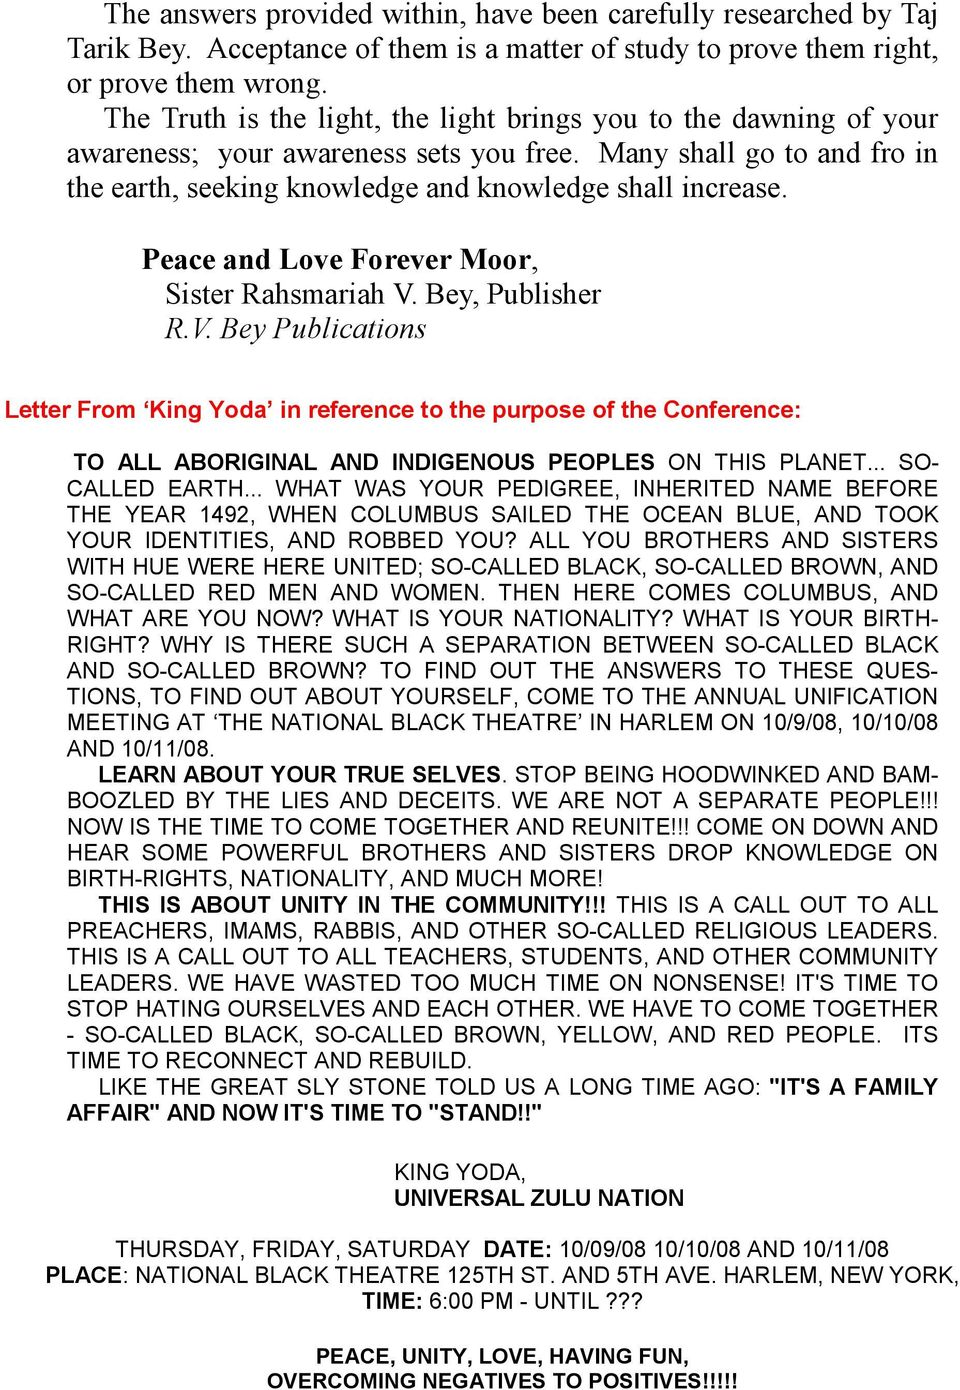 Peace and Love Forever Moor, Sister Rahsmariah V. Bey, Publisher R.V. Bey Publications Letter From King Yoda in reference to the purpose of the Conference: TO ALL ABORIGINAL AND INDIGENOUS PEOPLES ON THIS PLANET.